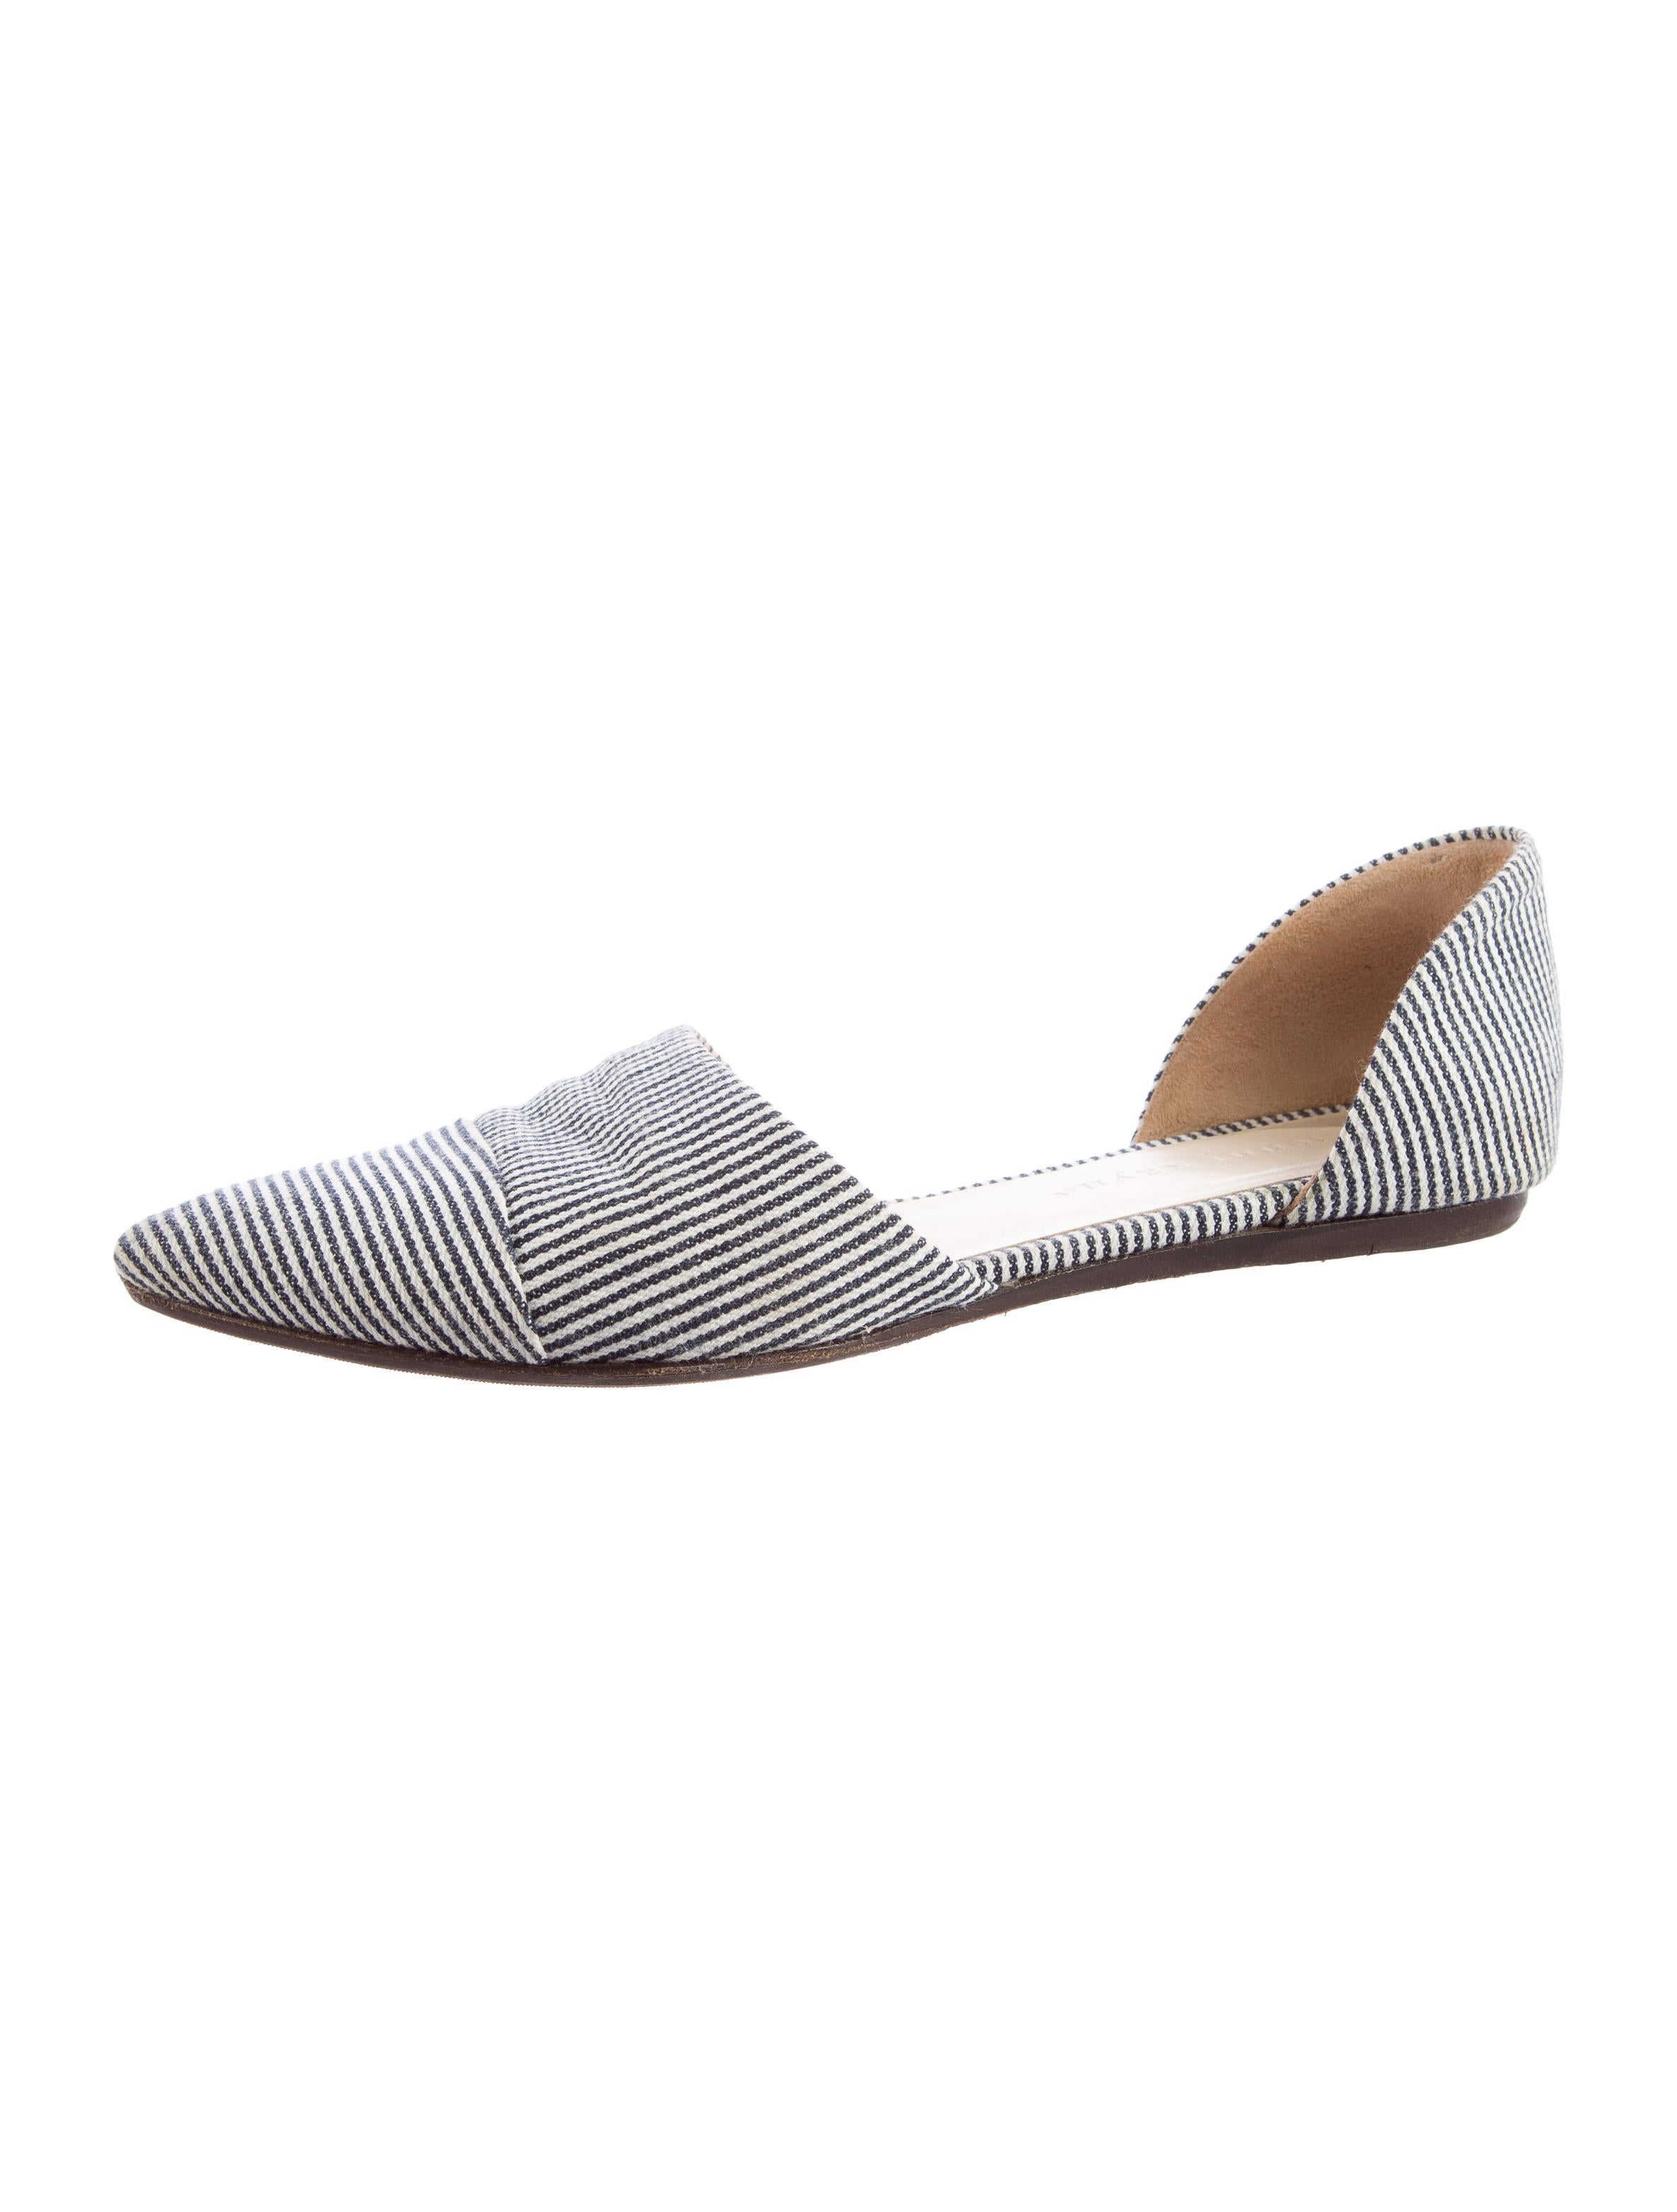 free shipping looking for cheap price Jenni Kayne Woven D'Orsay Flats cheap price wholesale outlet cheapest price cheap sale fast delivery VFkbZE9Q1